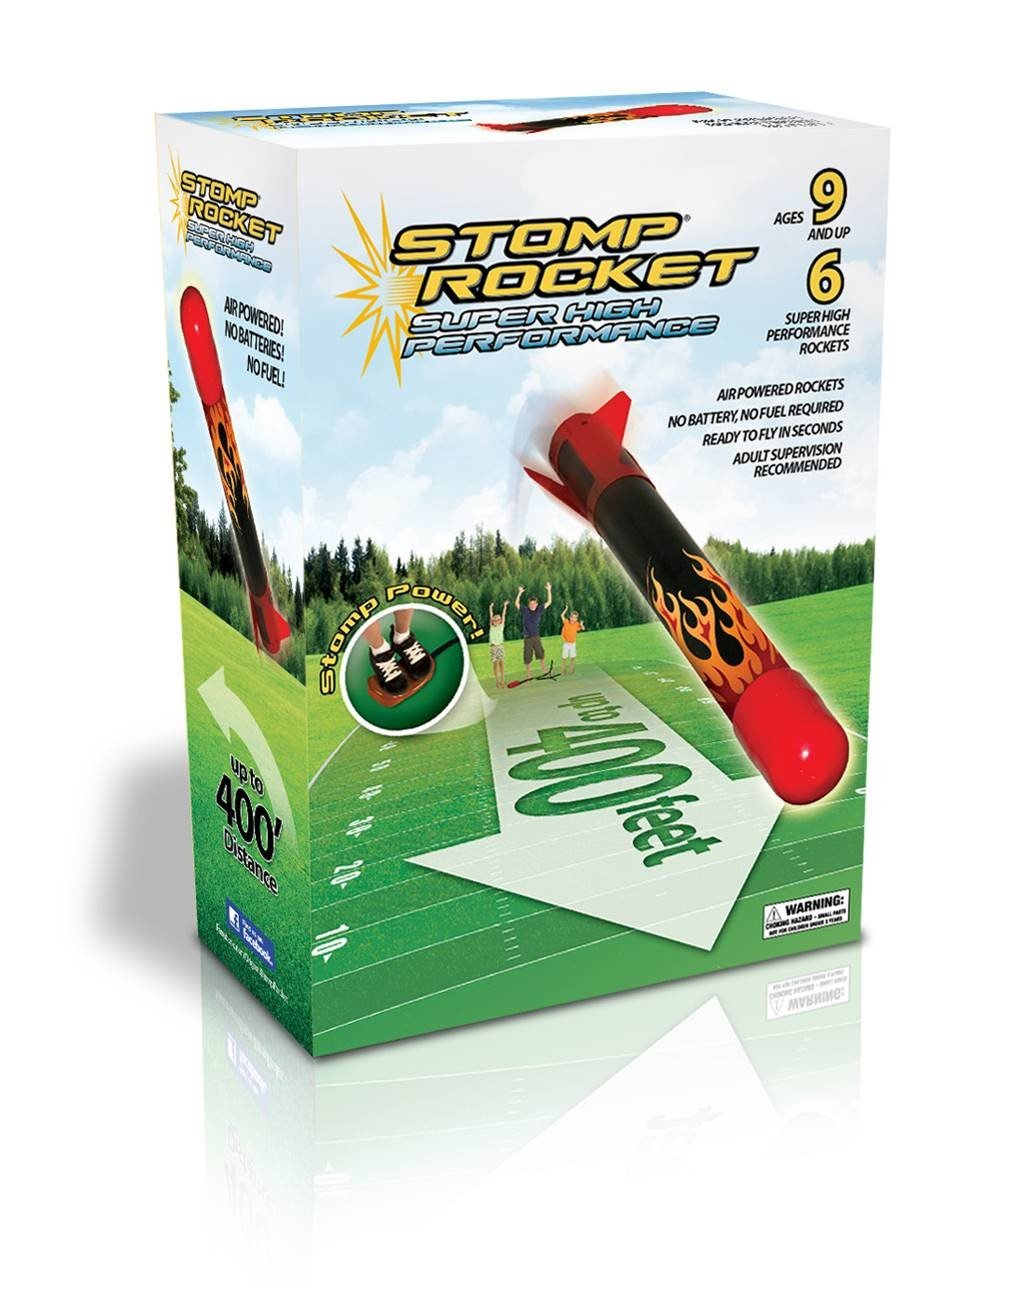 An image of a Stomp Rocket toy in a green box.